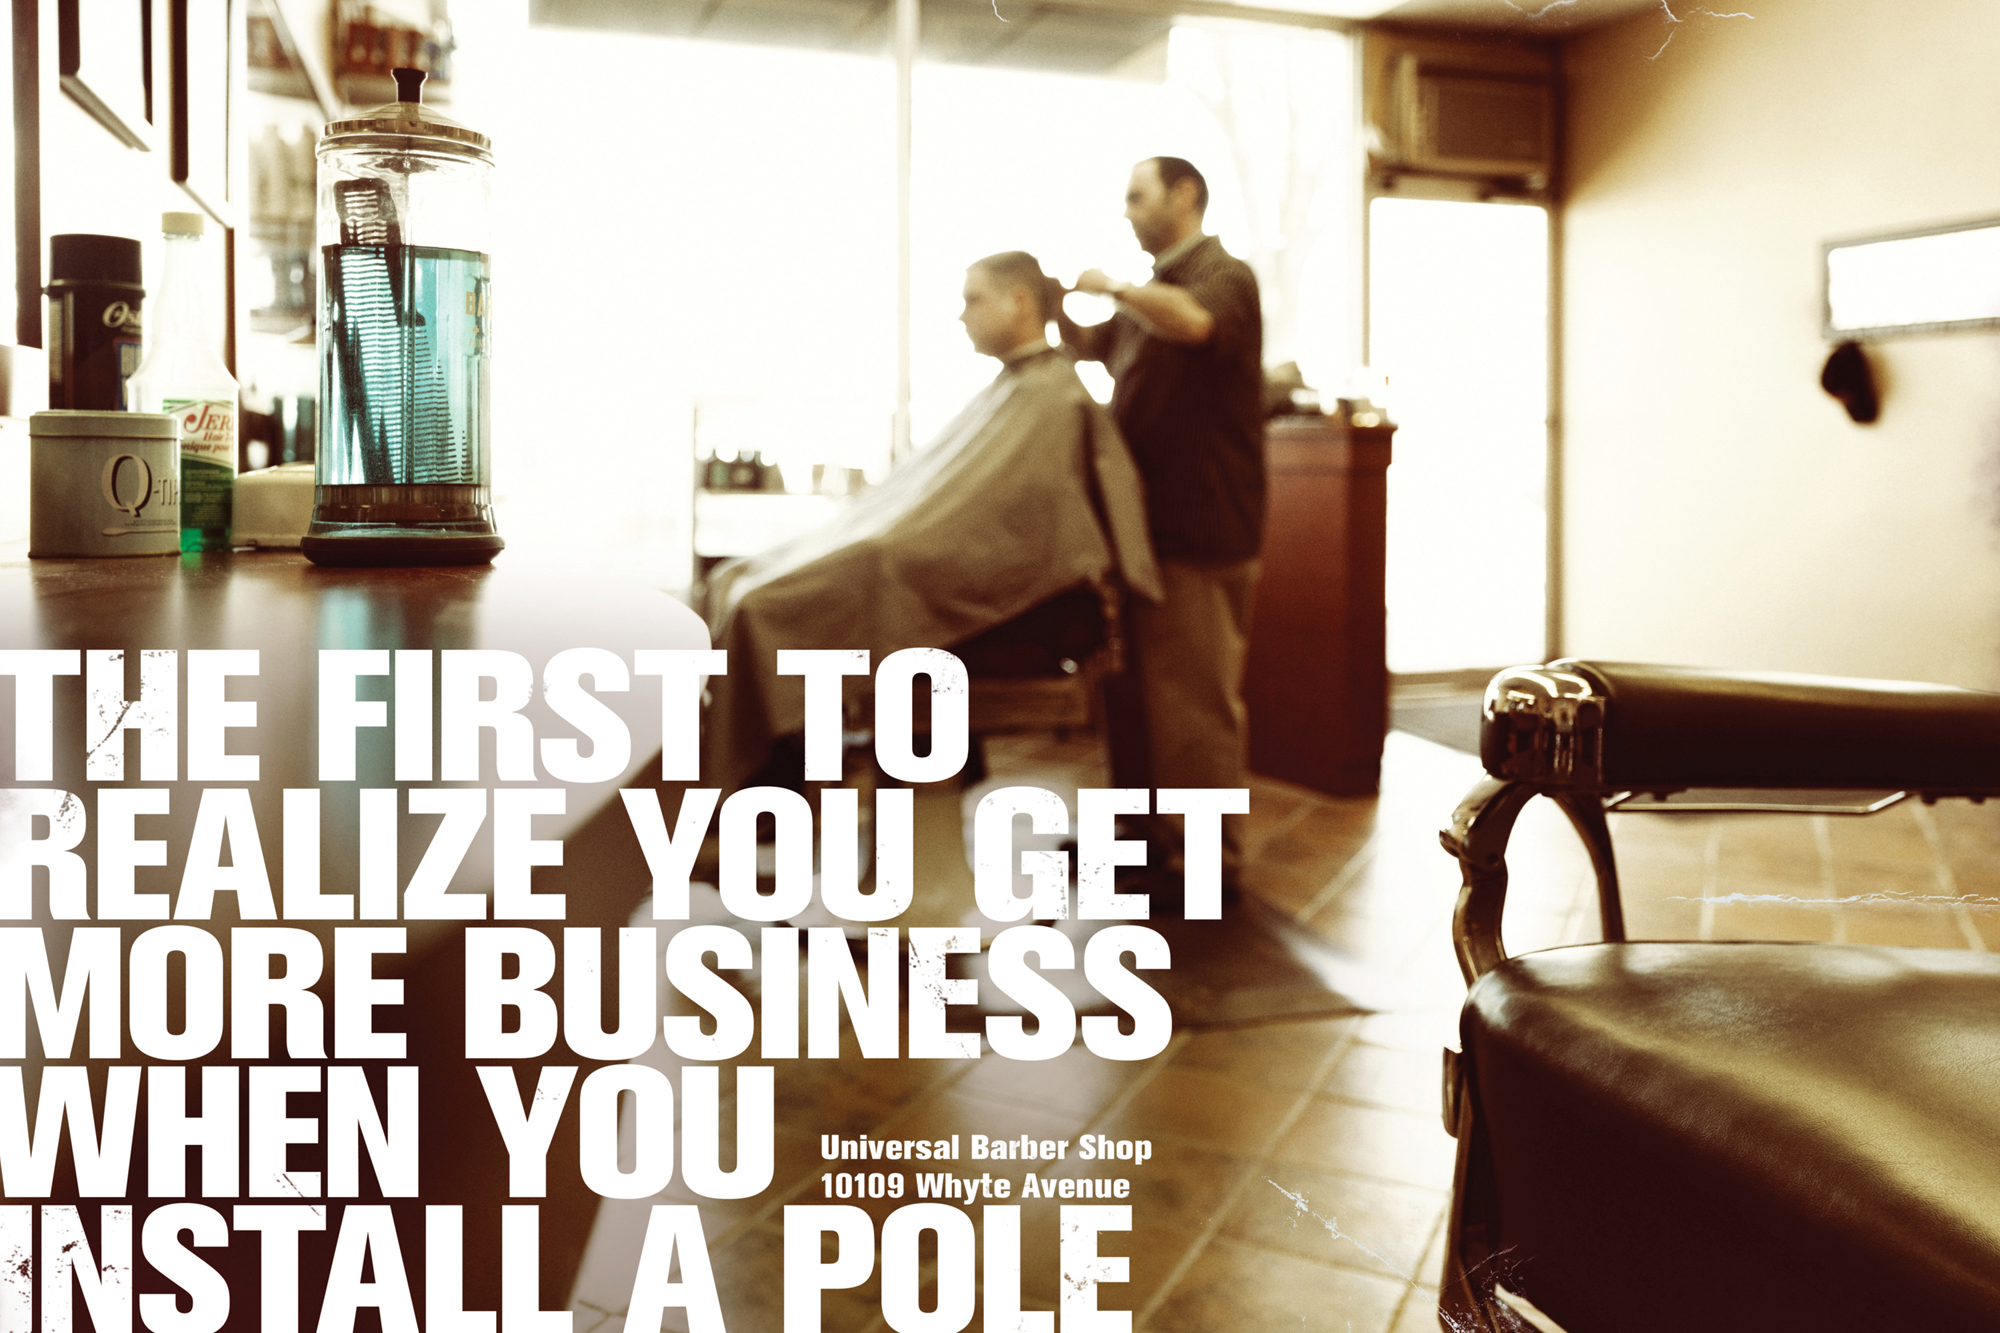 The first to realize you get more business when you install a pole